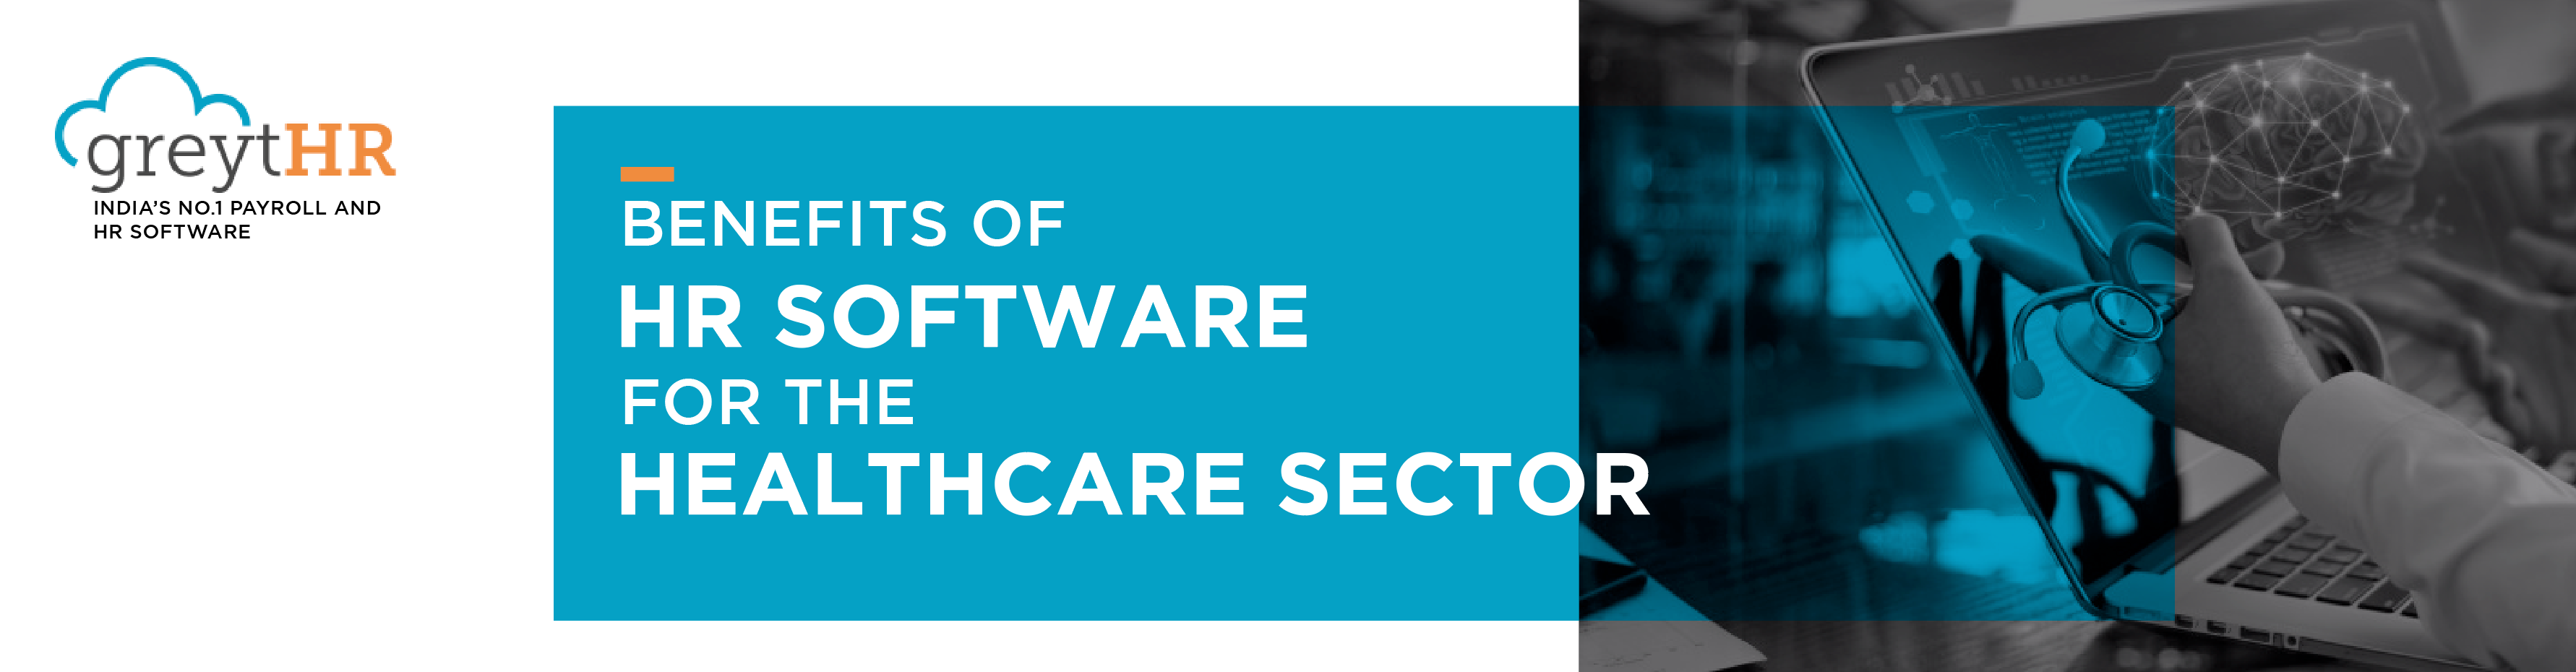 Benefits of HR software for the Healthcare Sector